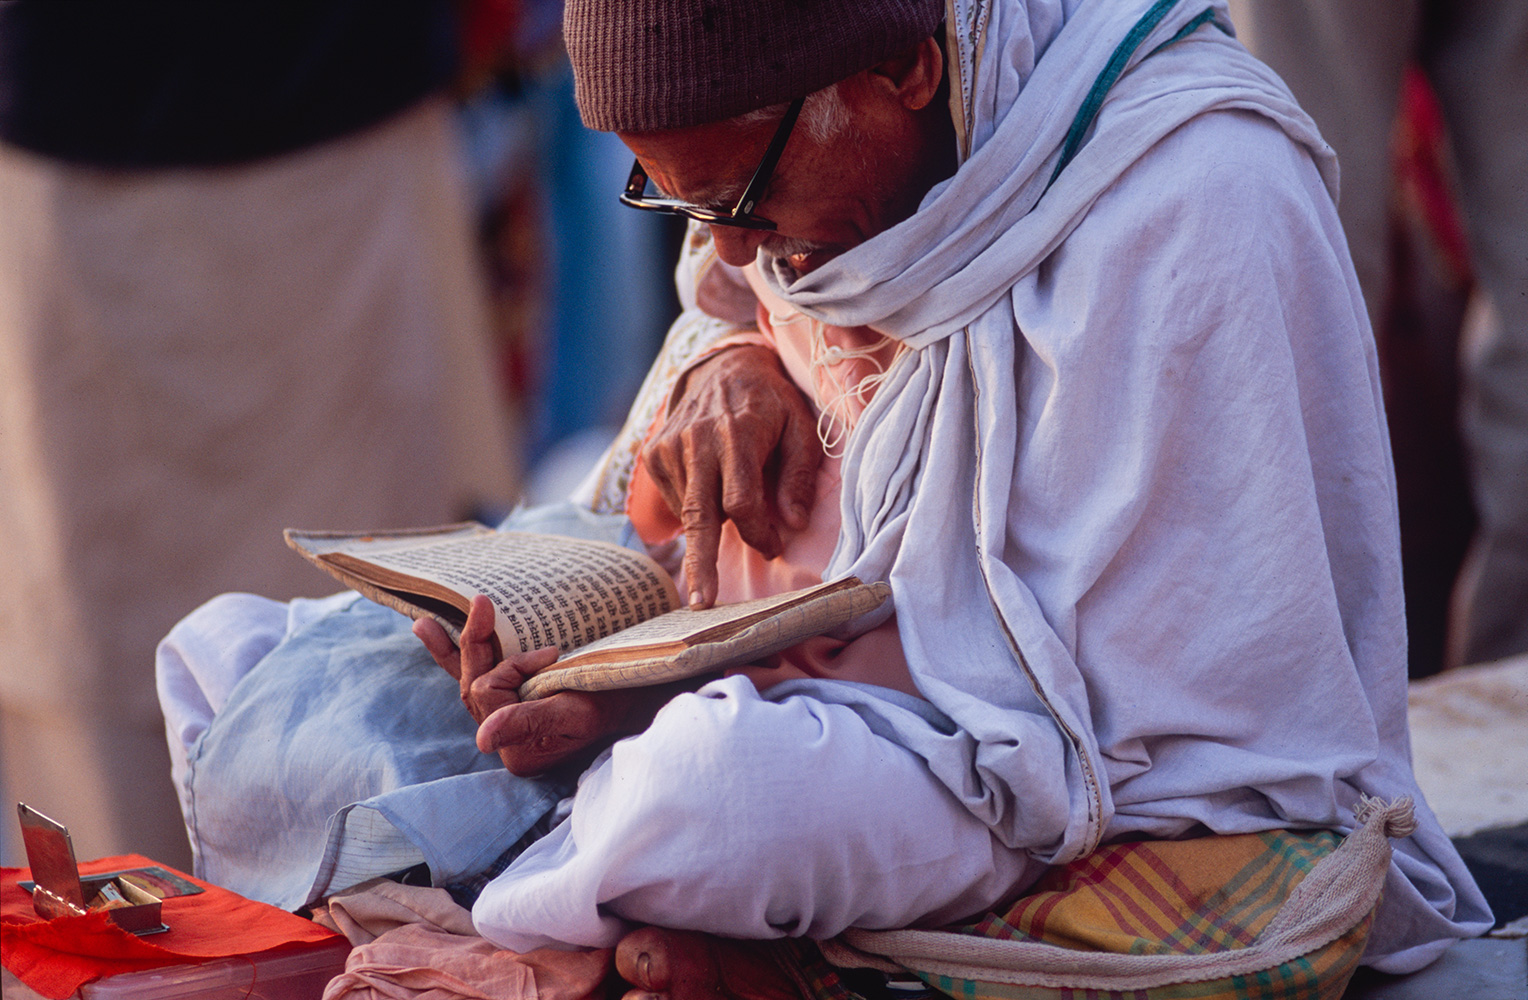 haridwar_man_reading_2004RVP